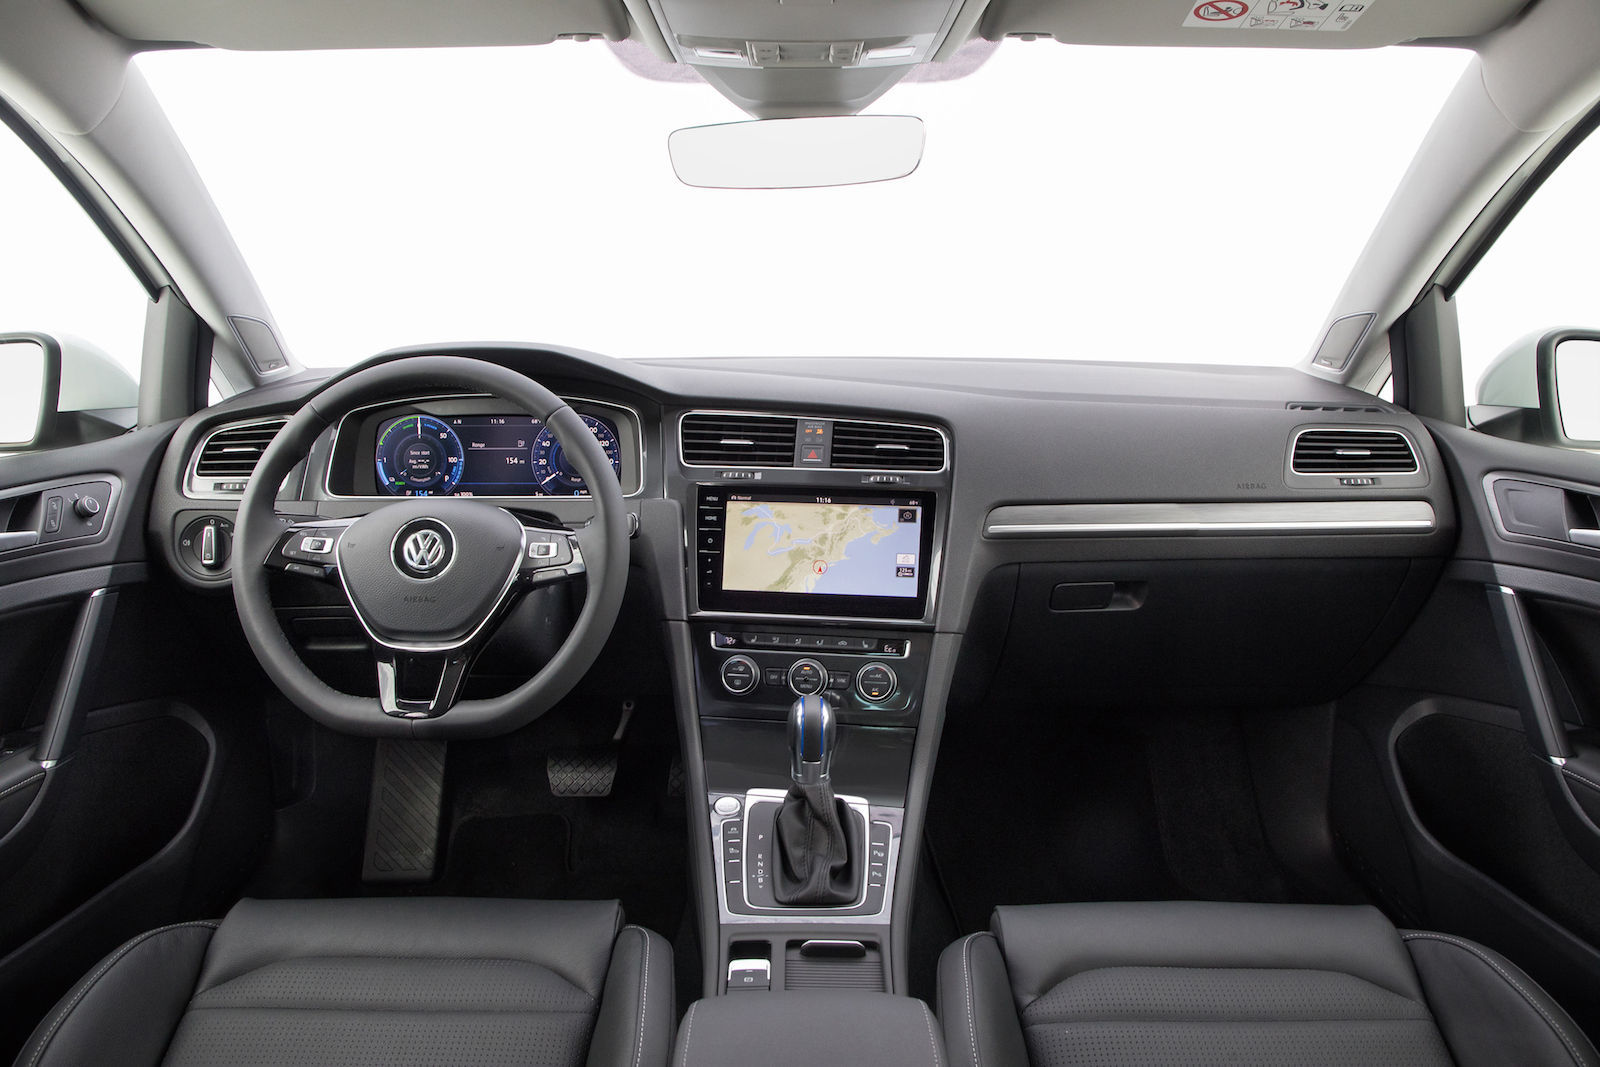 2018 volkswagen e golf range.  range volkswagen announces 2017 egolf pricing and massive range increase  the  drive on 2018 volkswagen e golf range